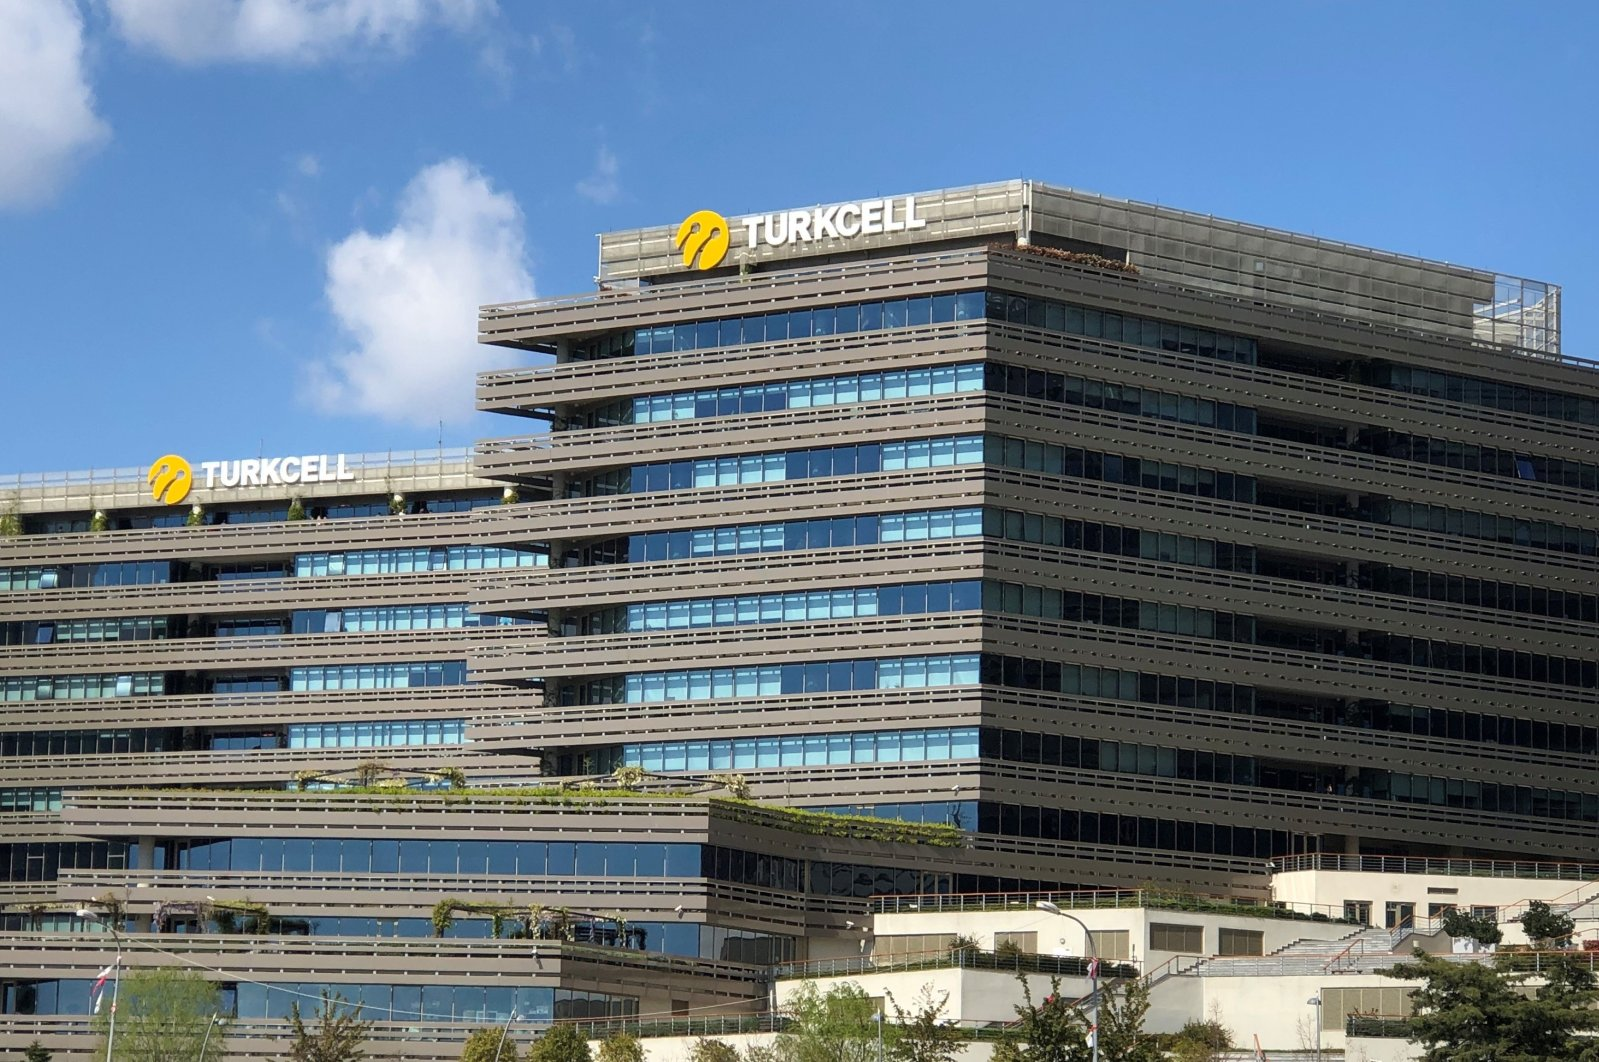 The headquarters of Turkcell in Istanbul, Turkey. (Courtesy of Turkcell)